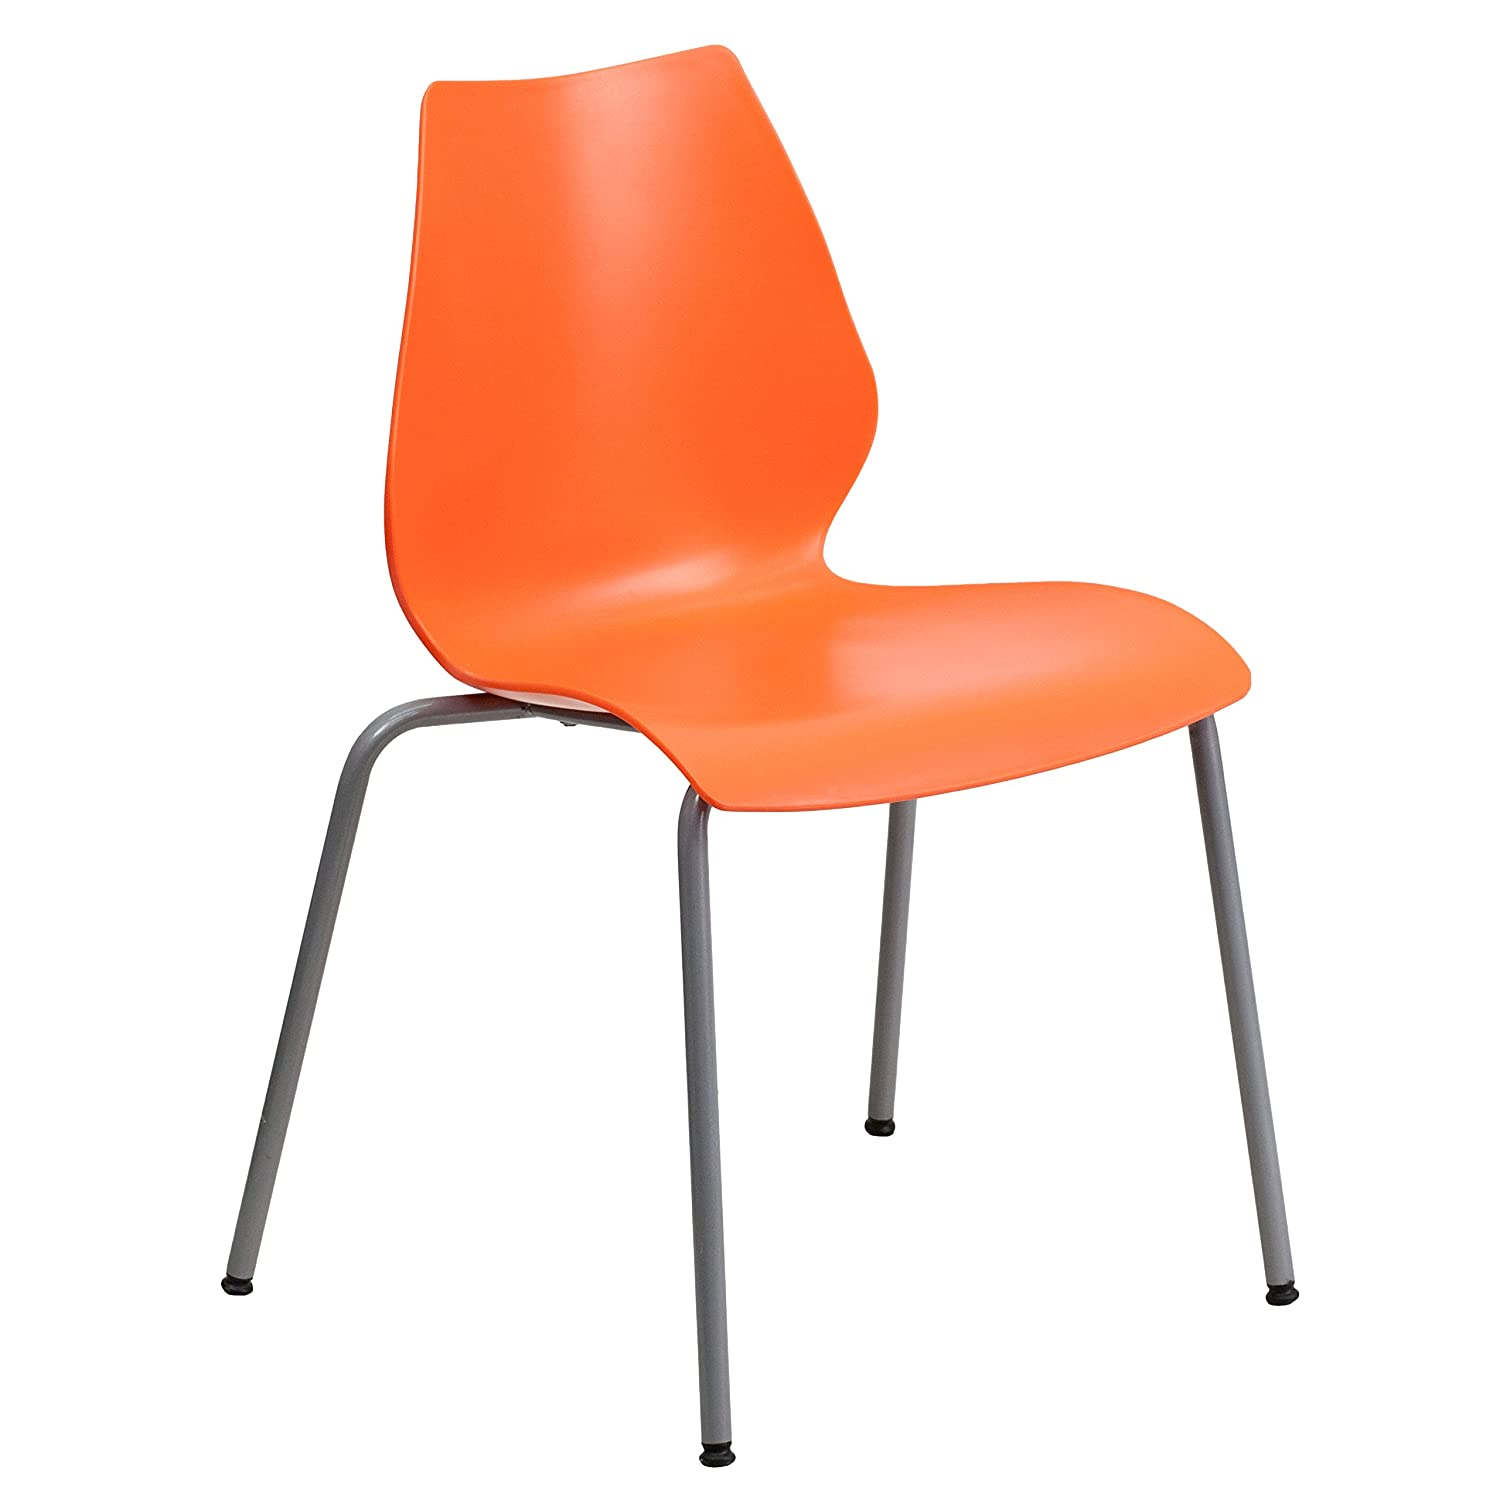 Flash Furniture HERCULES Series 770 lb. Capacity Orange Stack Chair with Lumbar Support and Silver Frame